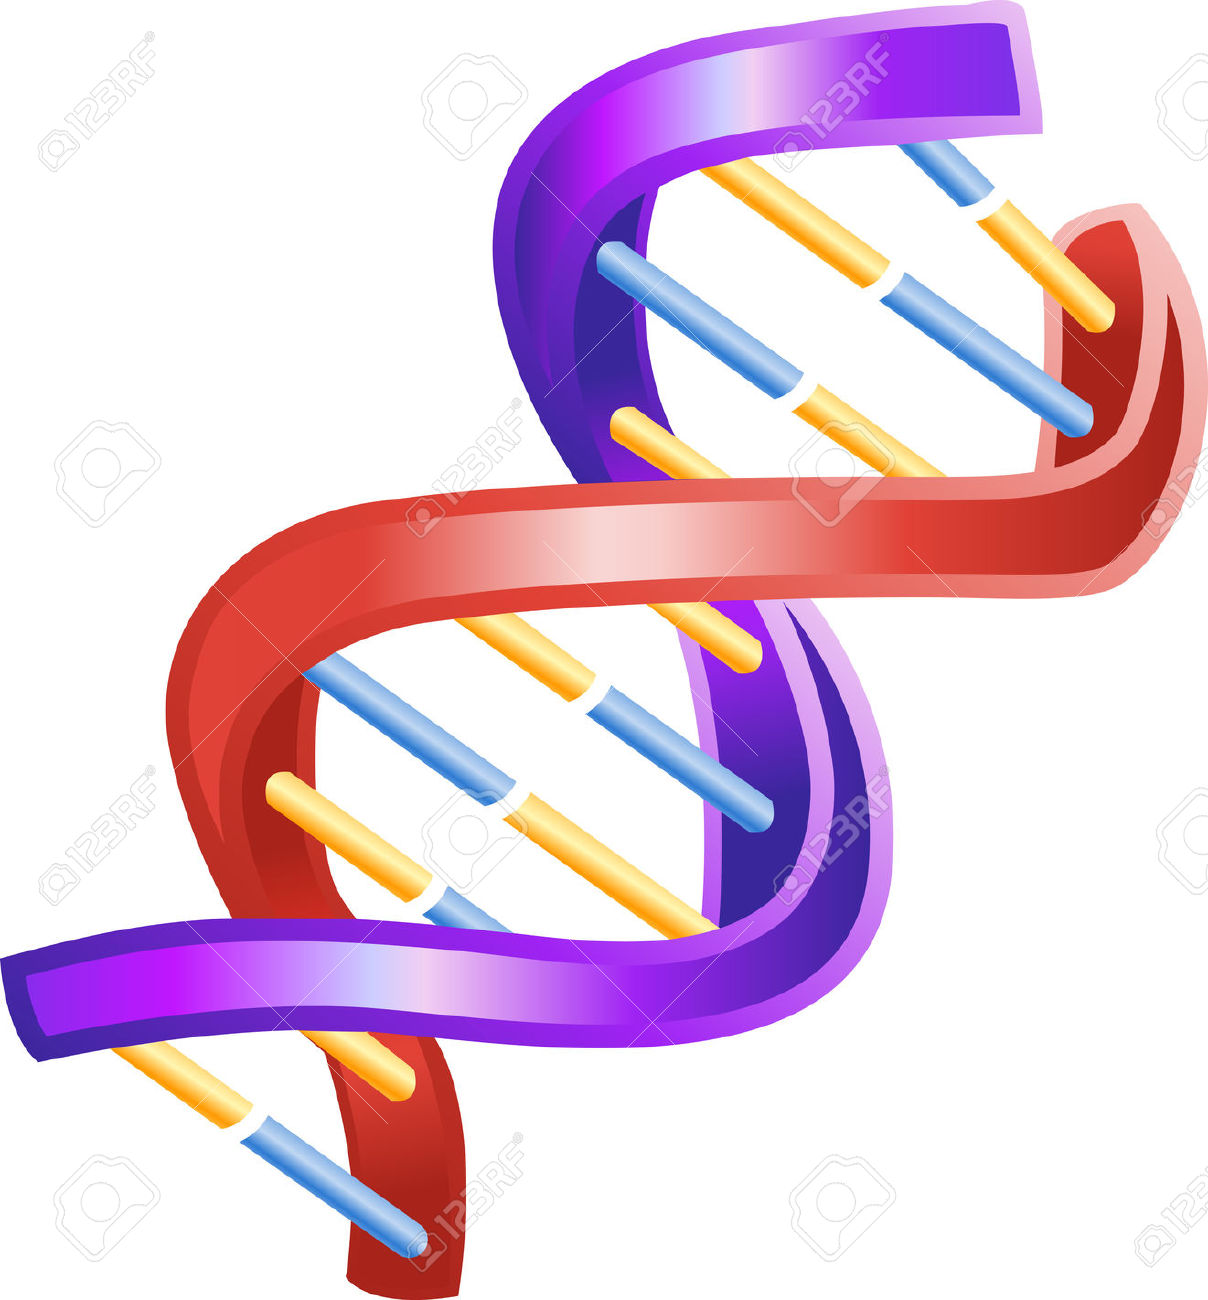 Biology clipart double helix, Biology double helix.